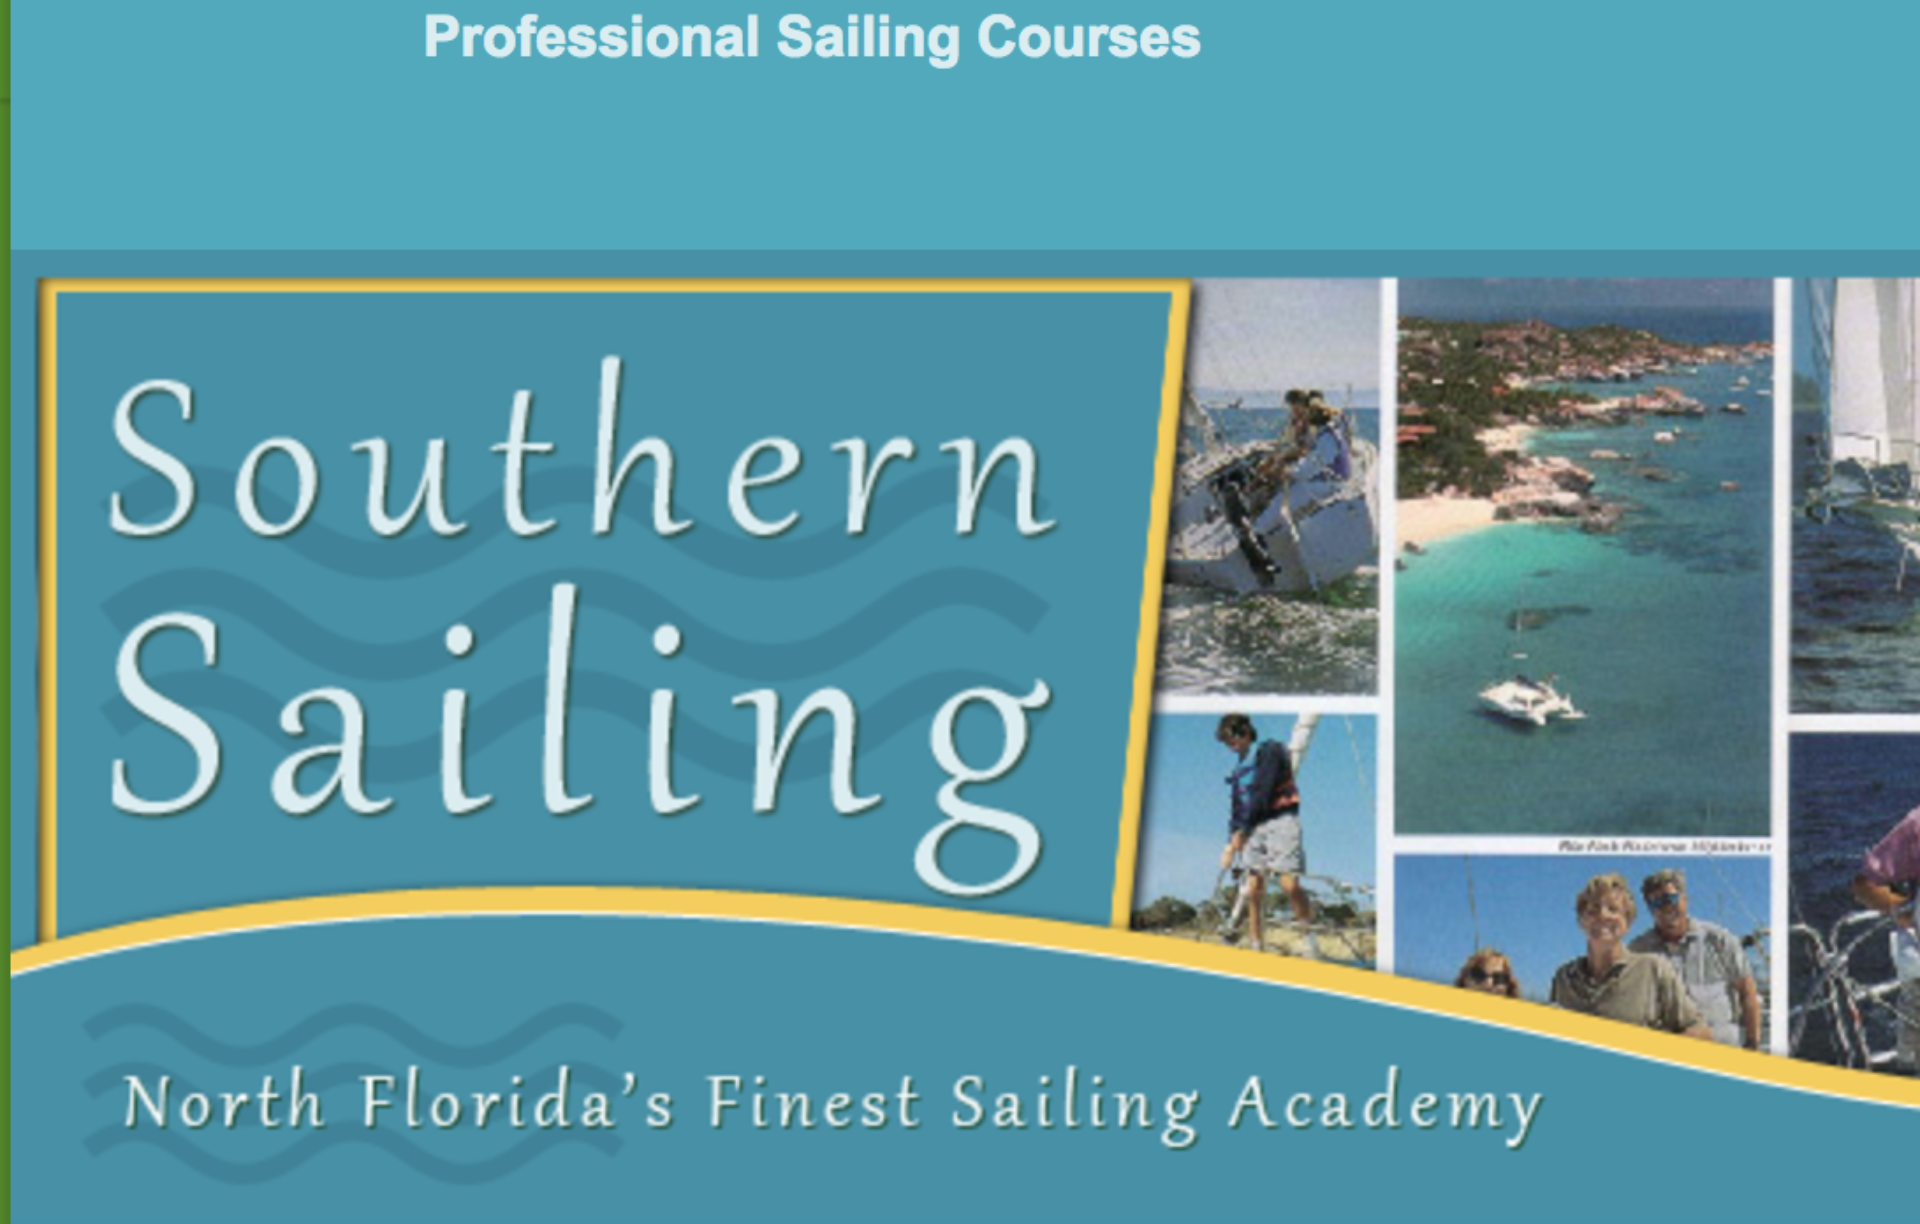 Southern Sailing School + Academy ~~~ 904-728-2161